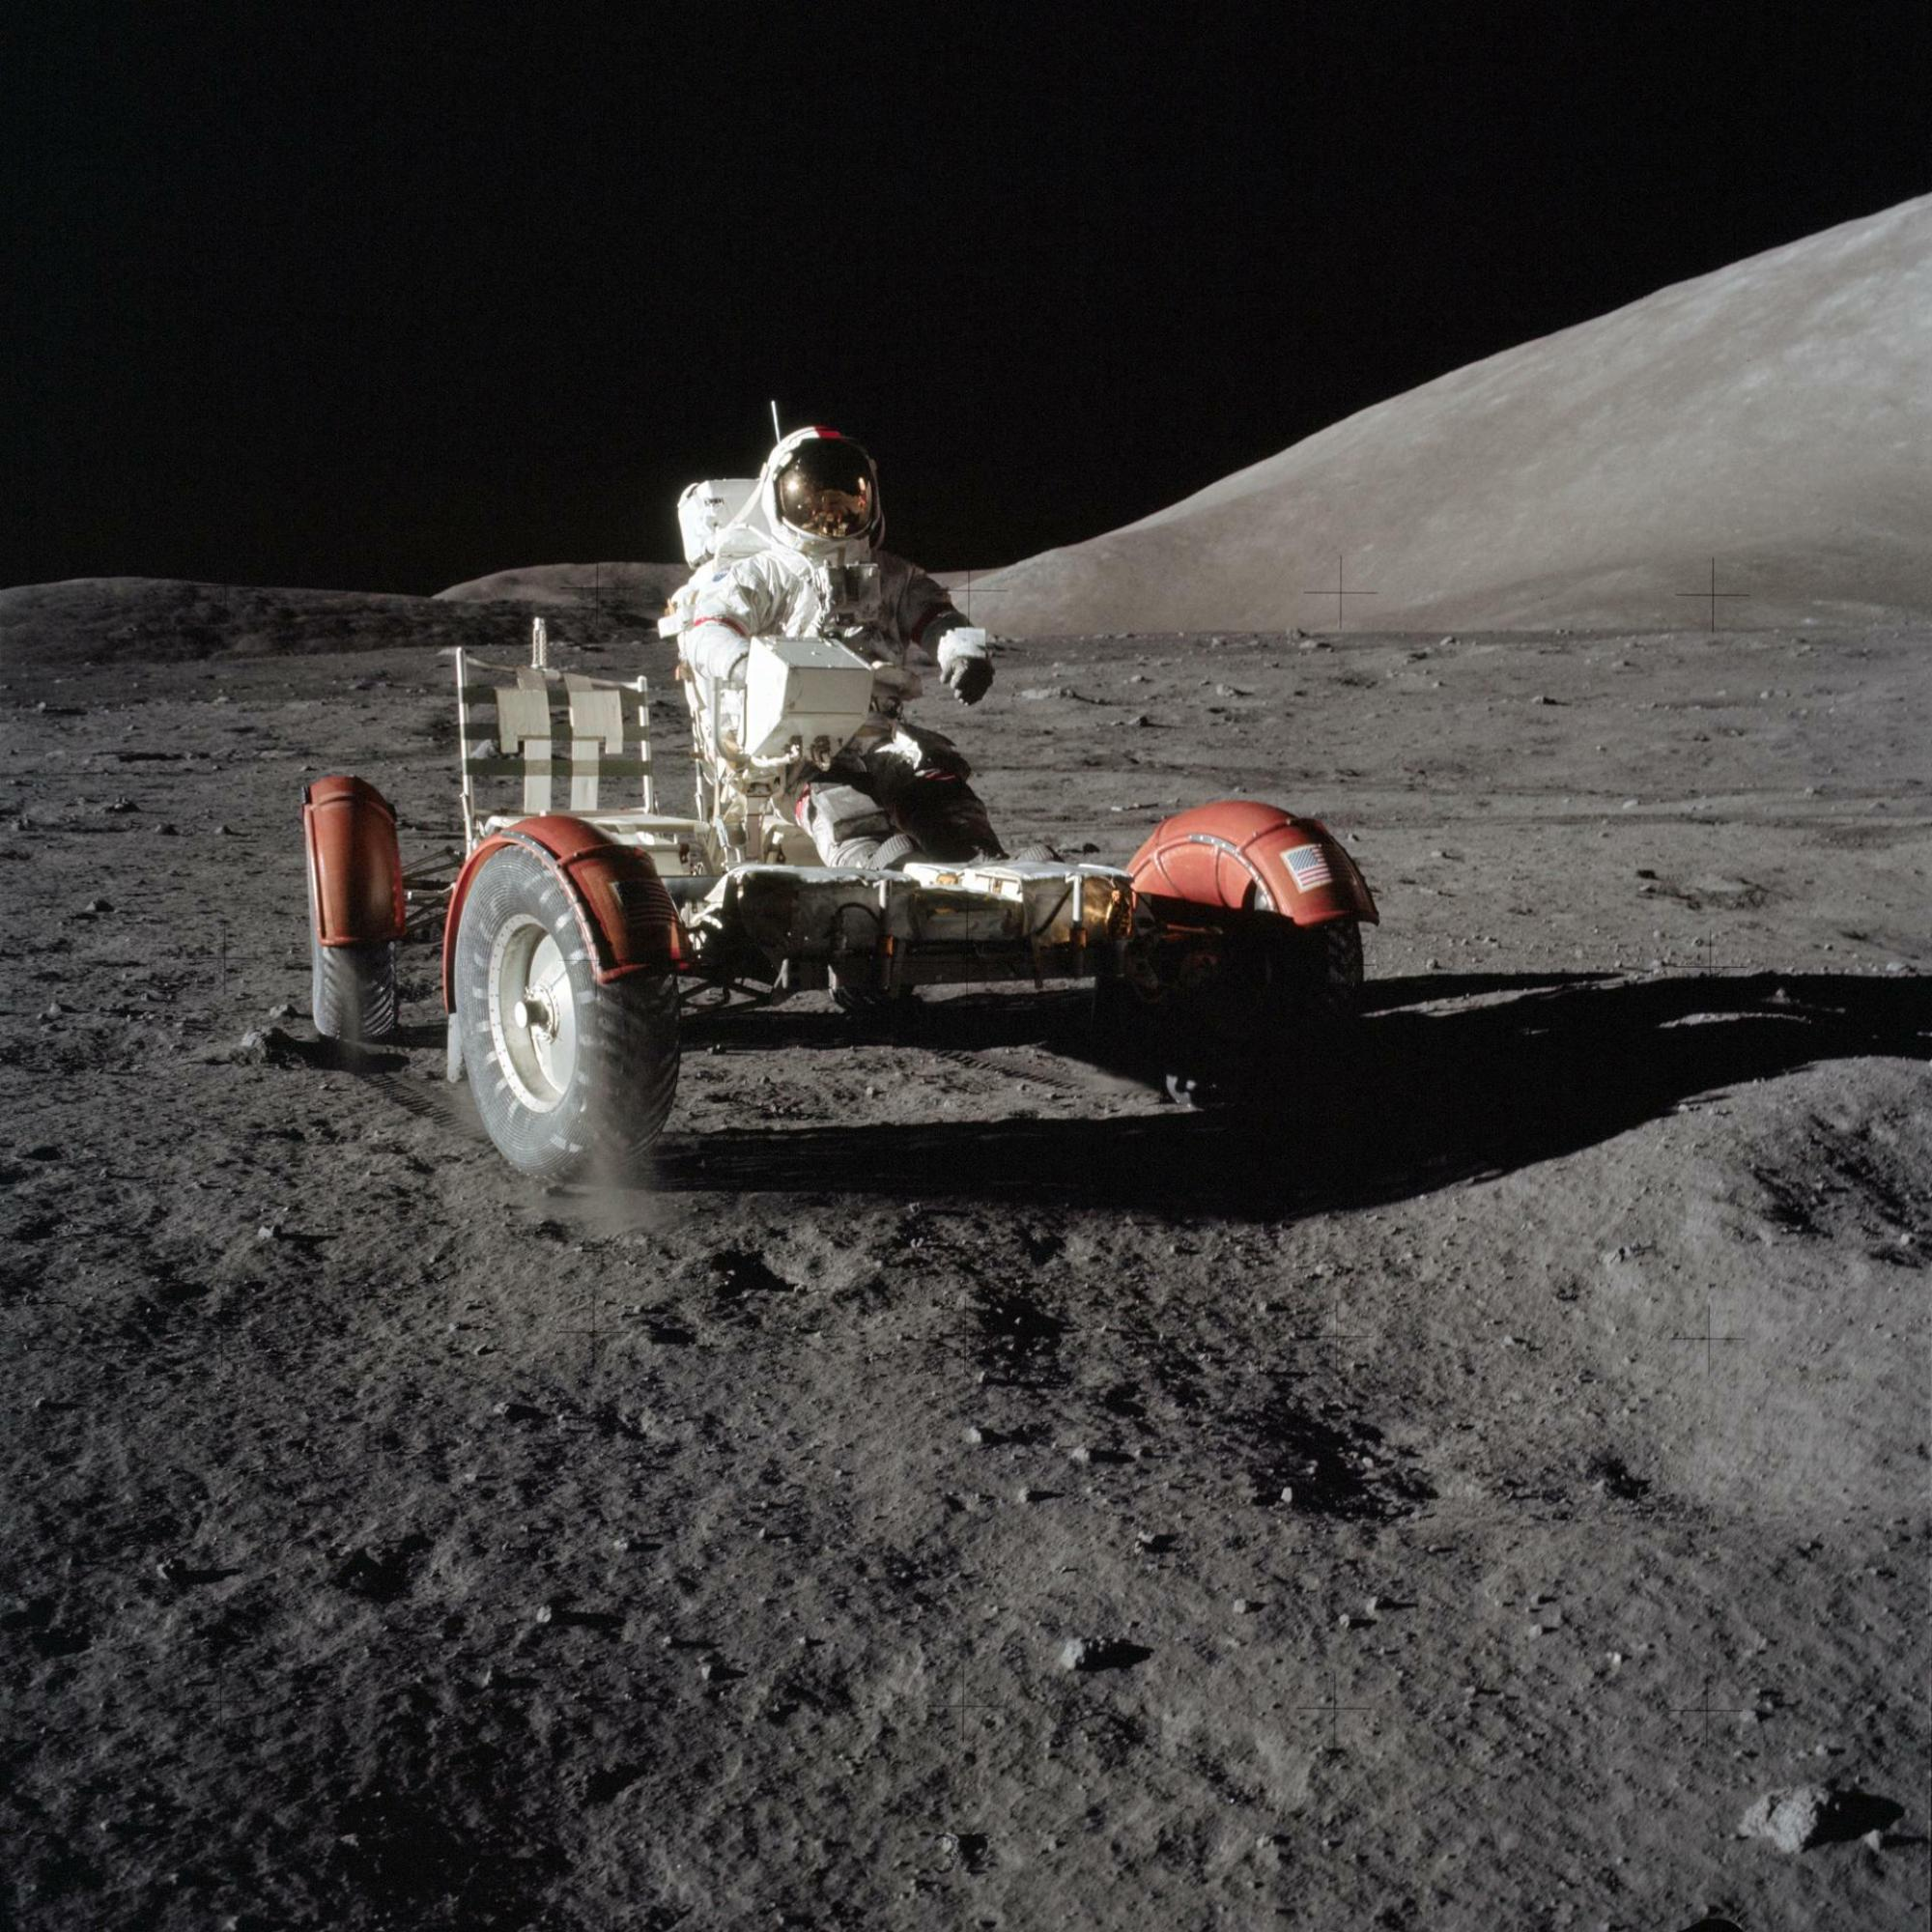 Astronaut Eugene Cernan sits on a barebones Lunar Roving Vehicle during Apollo 17 in 1972. After lowering it from the Lunar Module and unfolding it, astronauts had to raise the seats and install equipment like communications antennae. In this image, the astronauts have not finishing loading equipment onto the LRV.